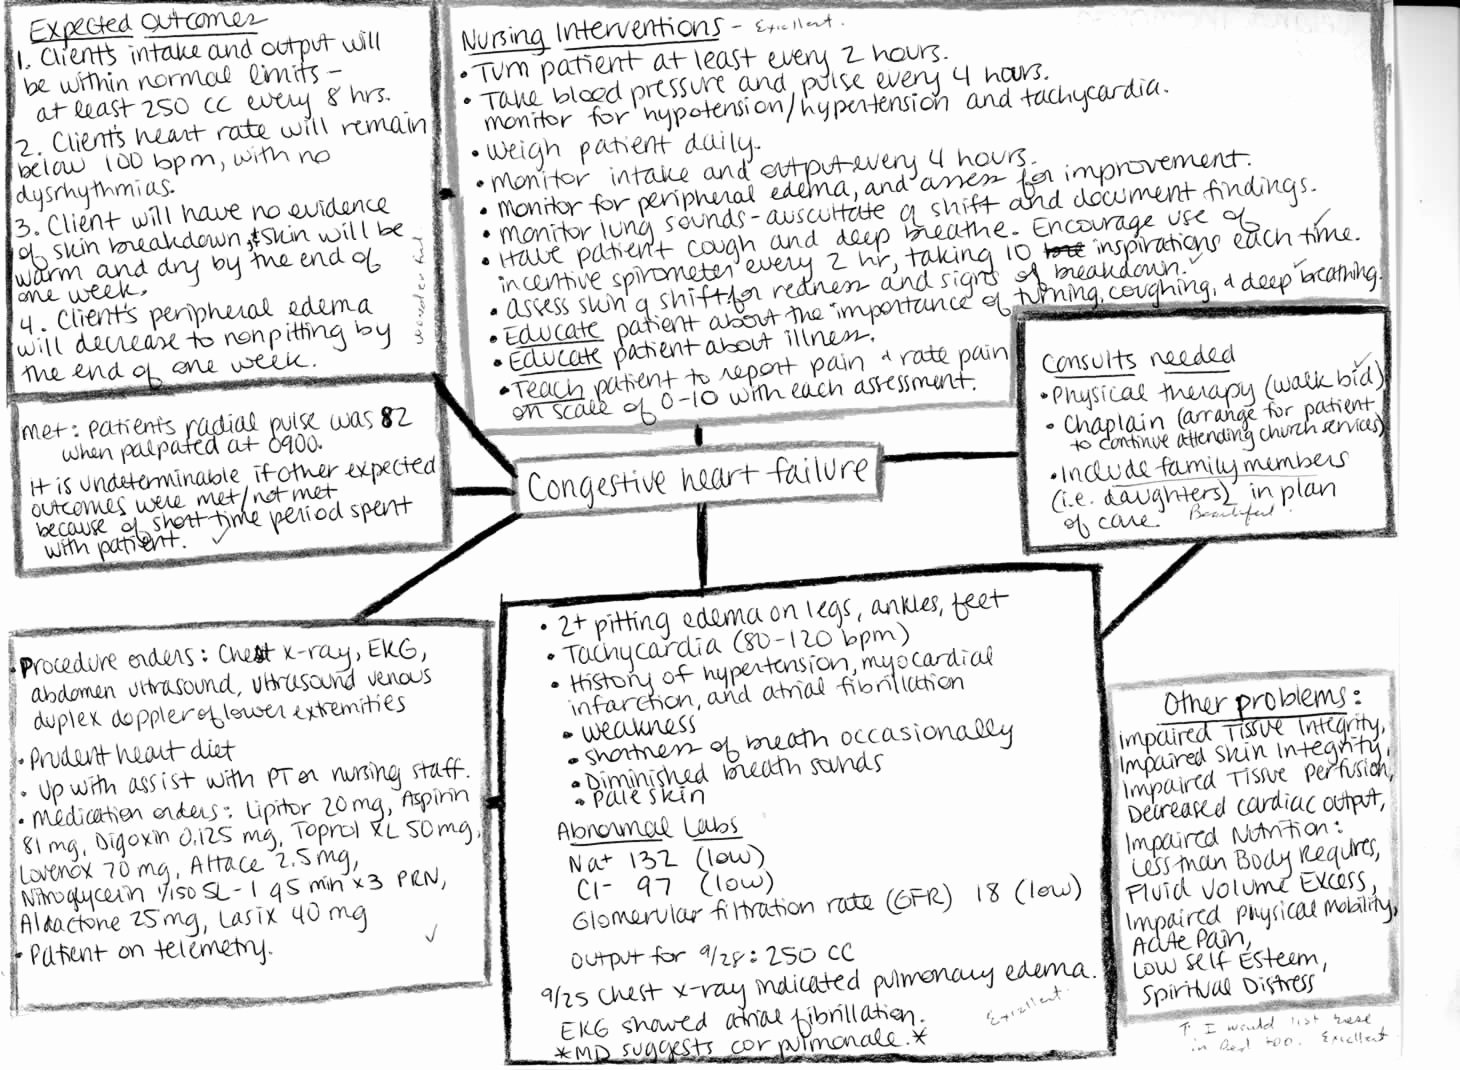 Nursing Concept Map Template Elegant Nursing Concept Maps Process